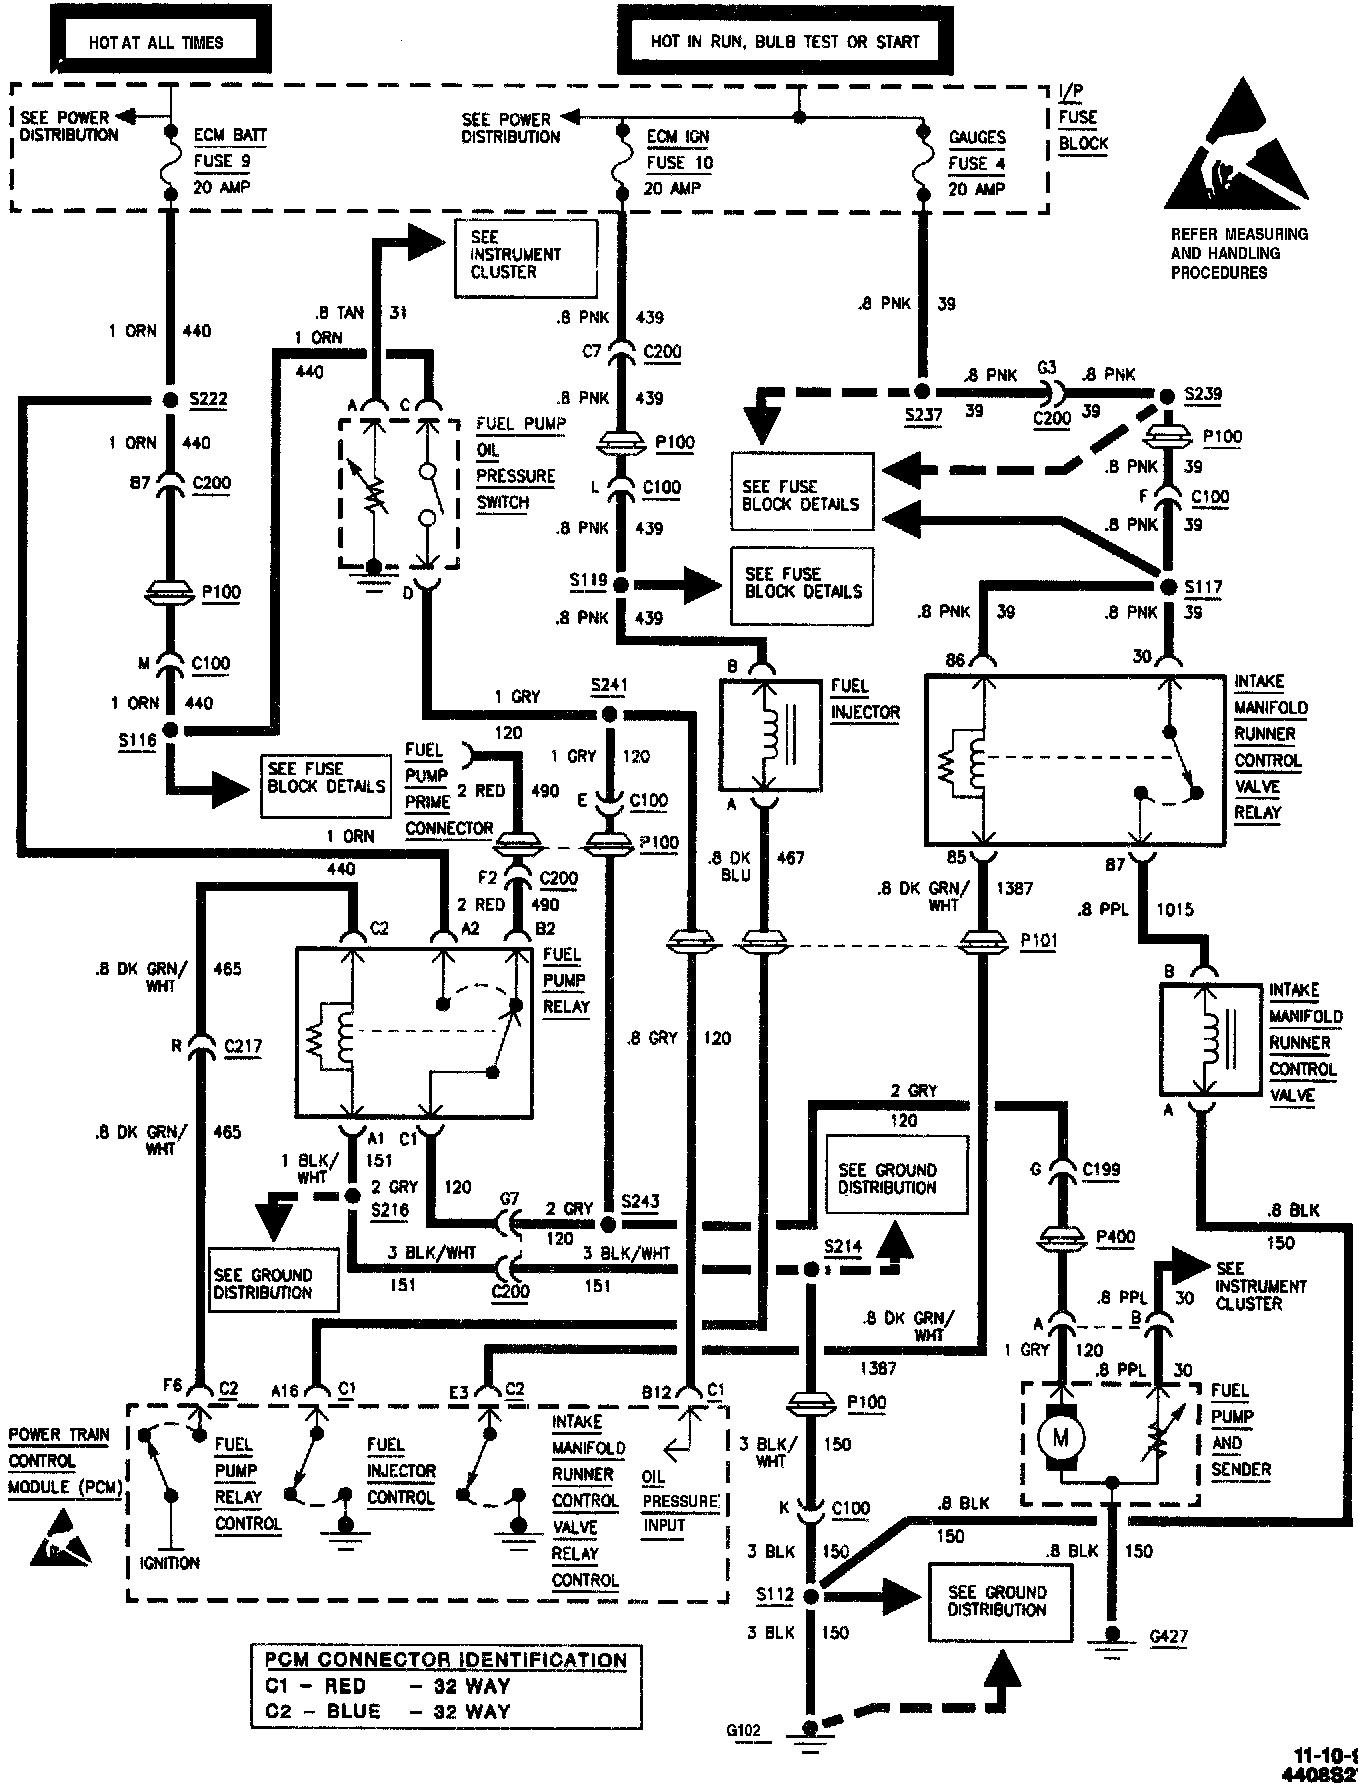 U Model Mack Truck Wiring - Schematics Online on understanding transformer diagrams, understanding engineering drawings, understanding foundation diagrams, understanding circuits diagrams, pinout diagrams, understanding electrical diagrams, electronic circuit diagrams, understanding ladder diagrams, understanding schematic diagrams,